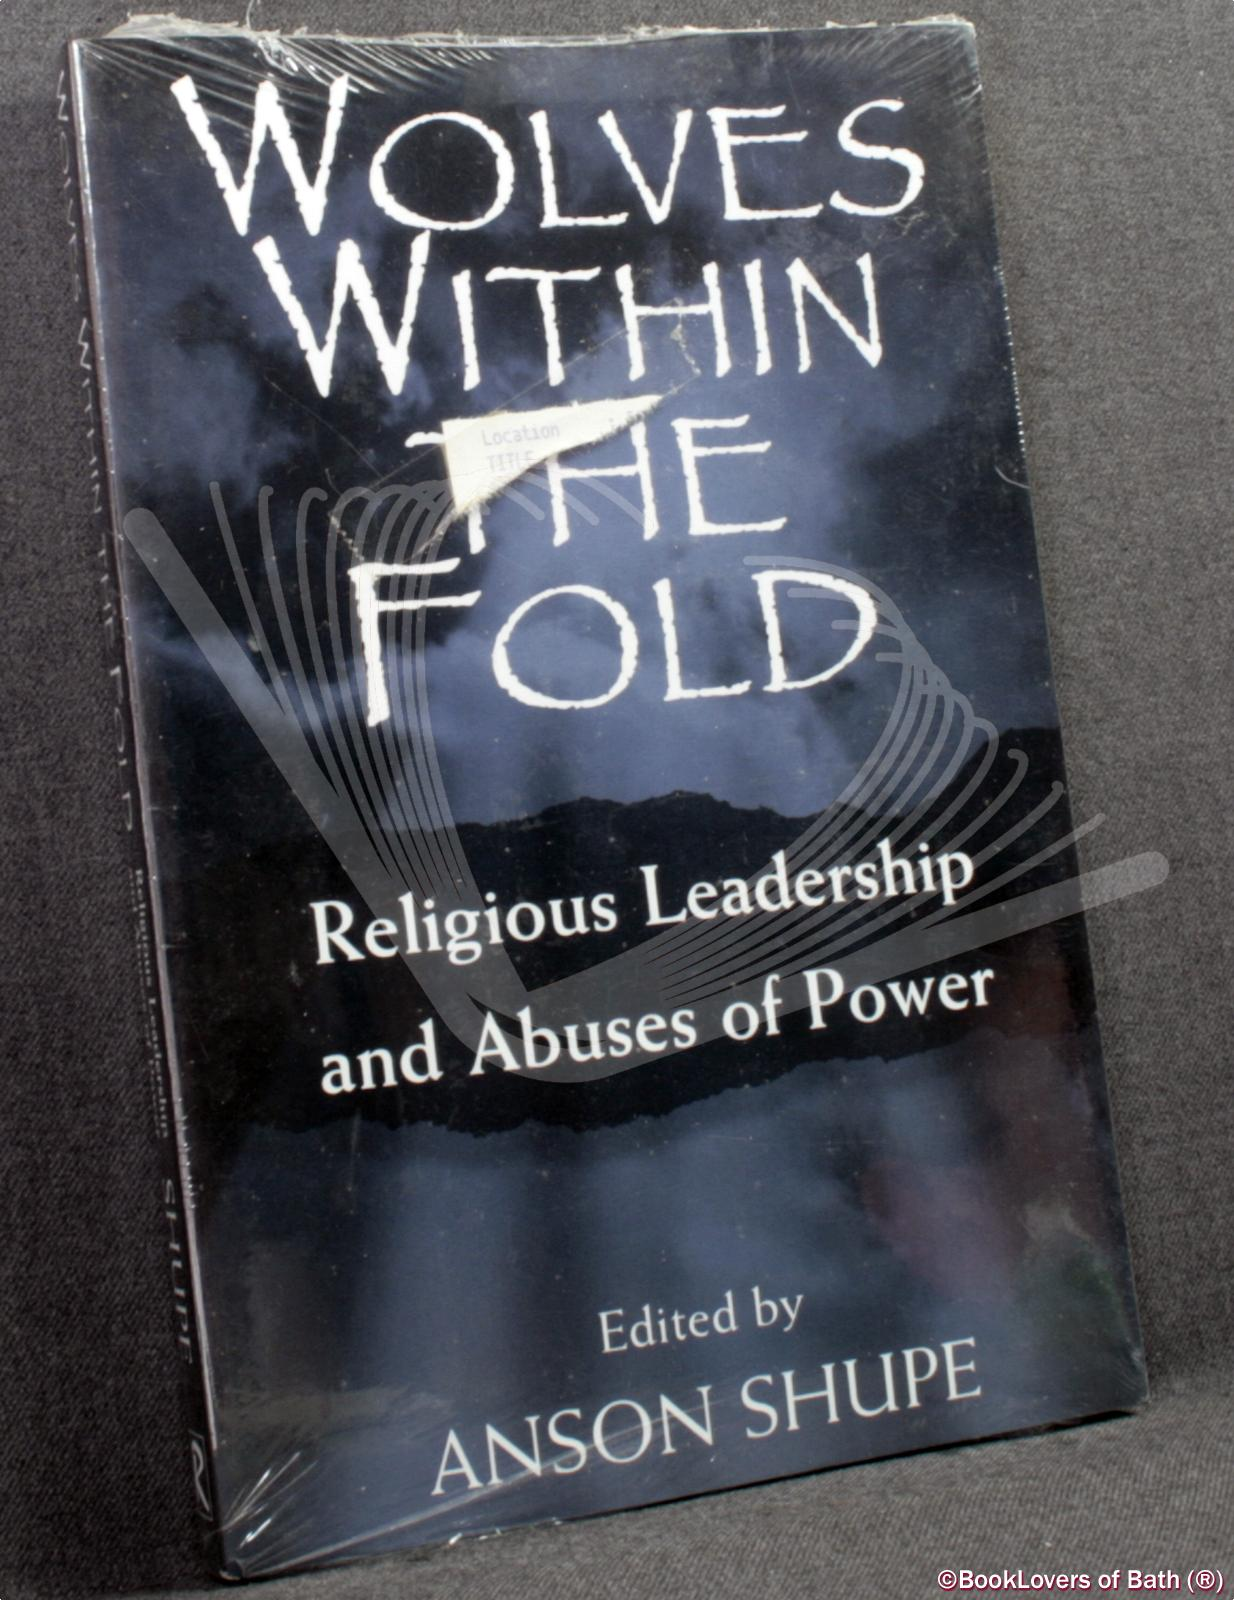 Wolves Within the Fold: Religious Leadership and Abuses of Power - Edited by Anson Shupe